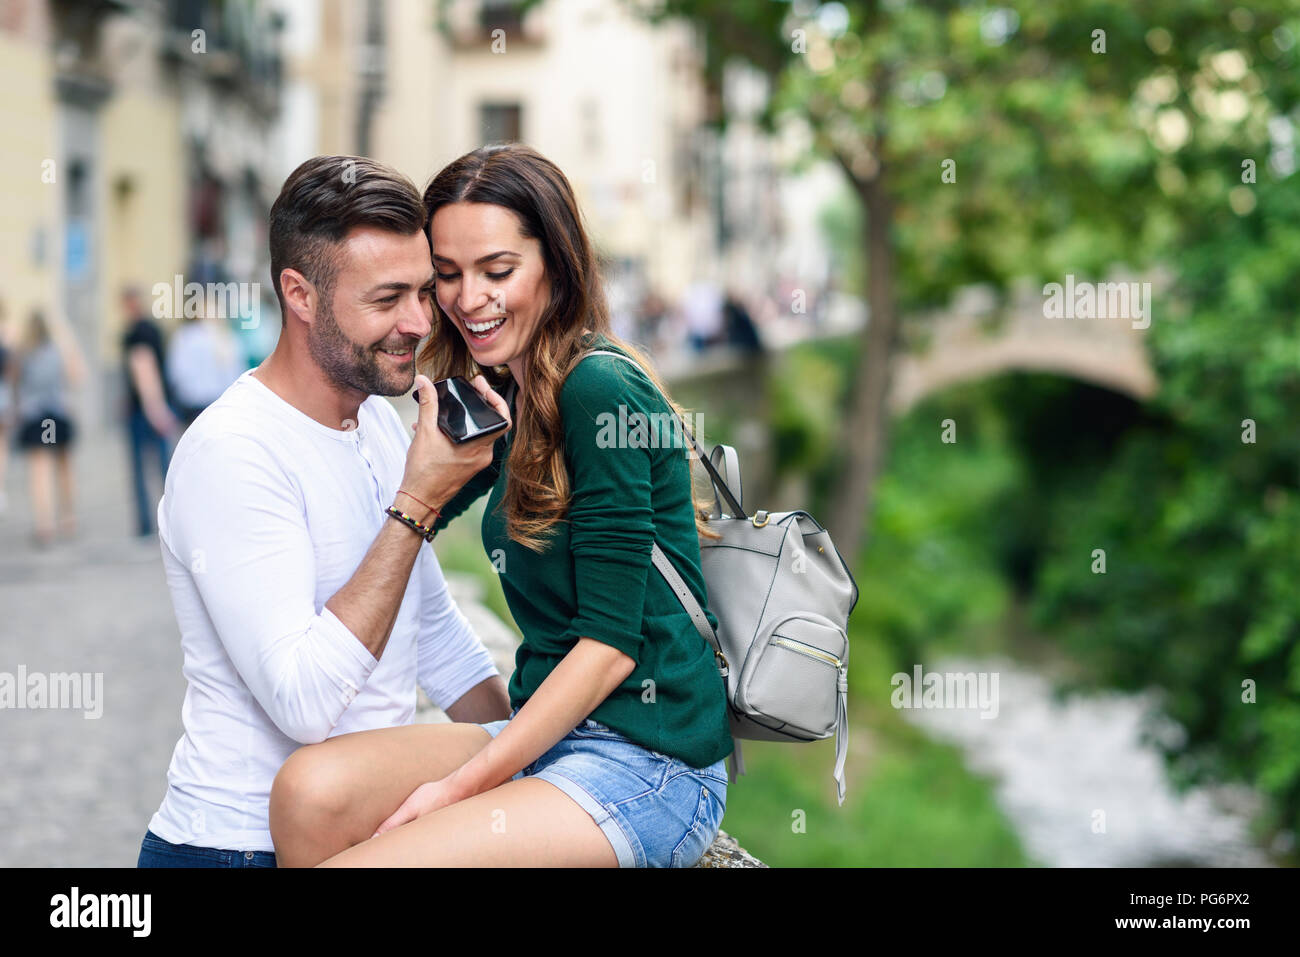 Happy tourist couple using cell phone in the city Stock Photo